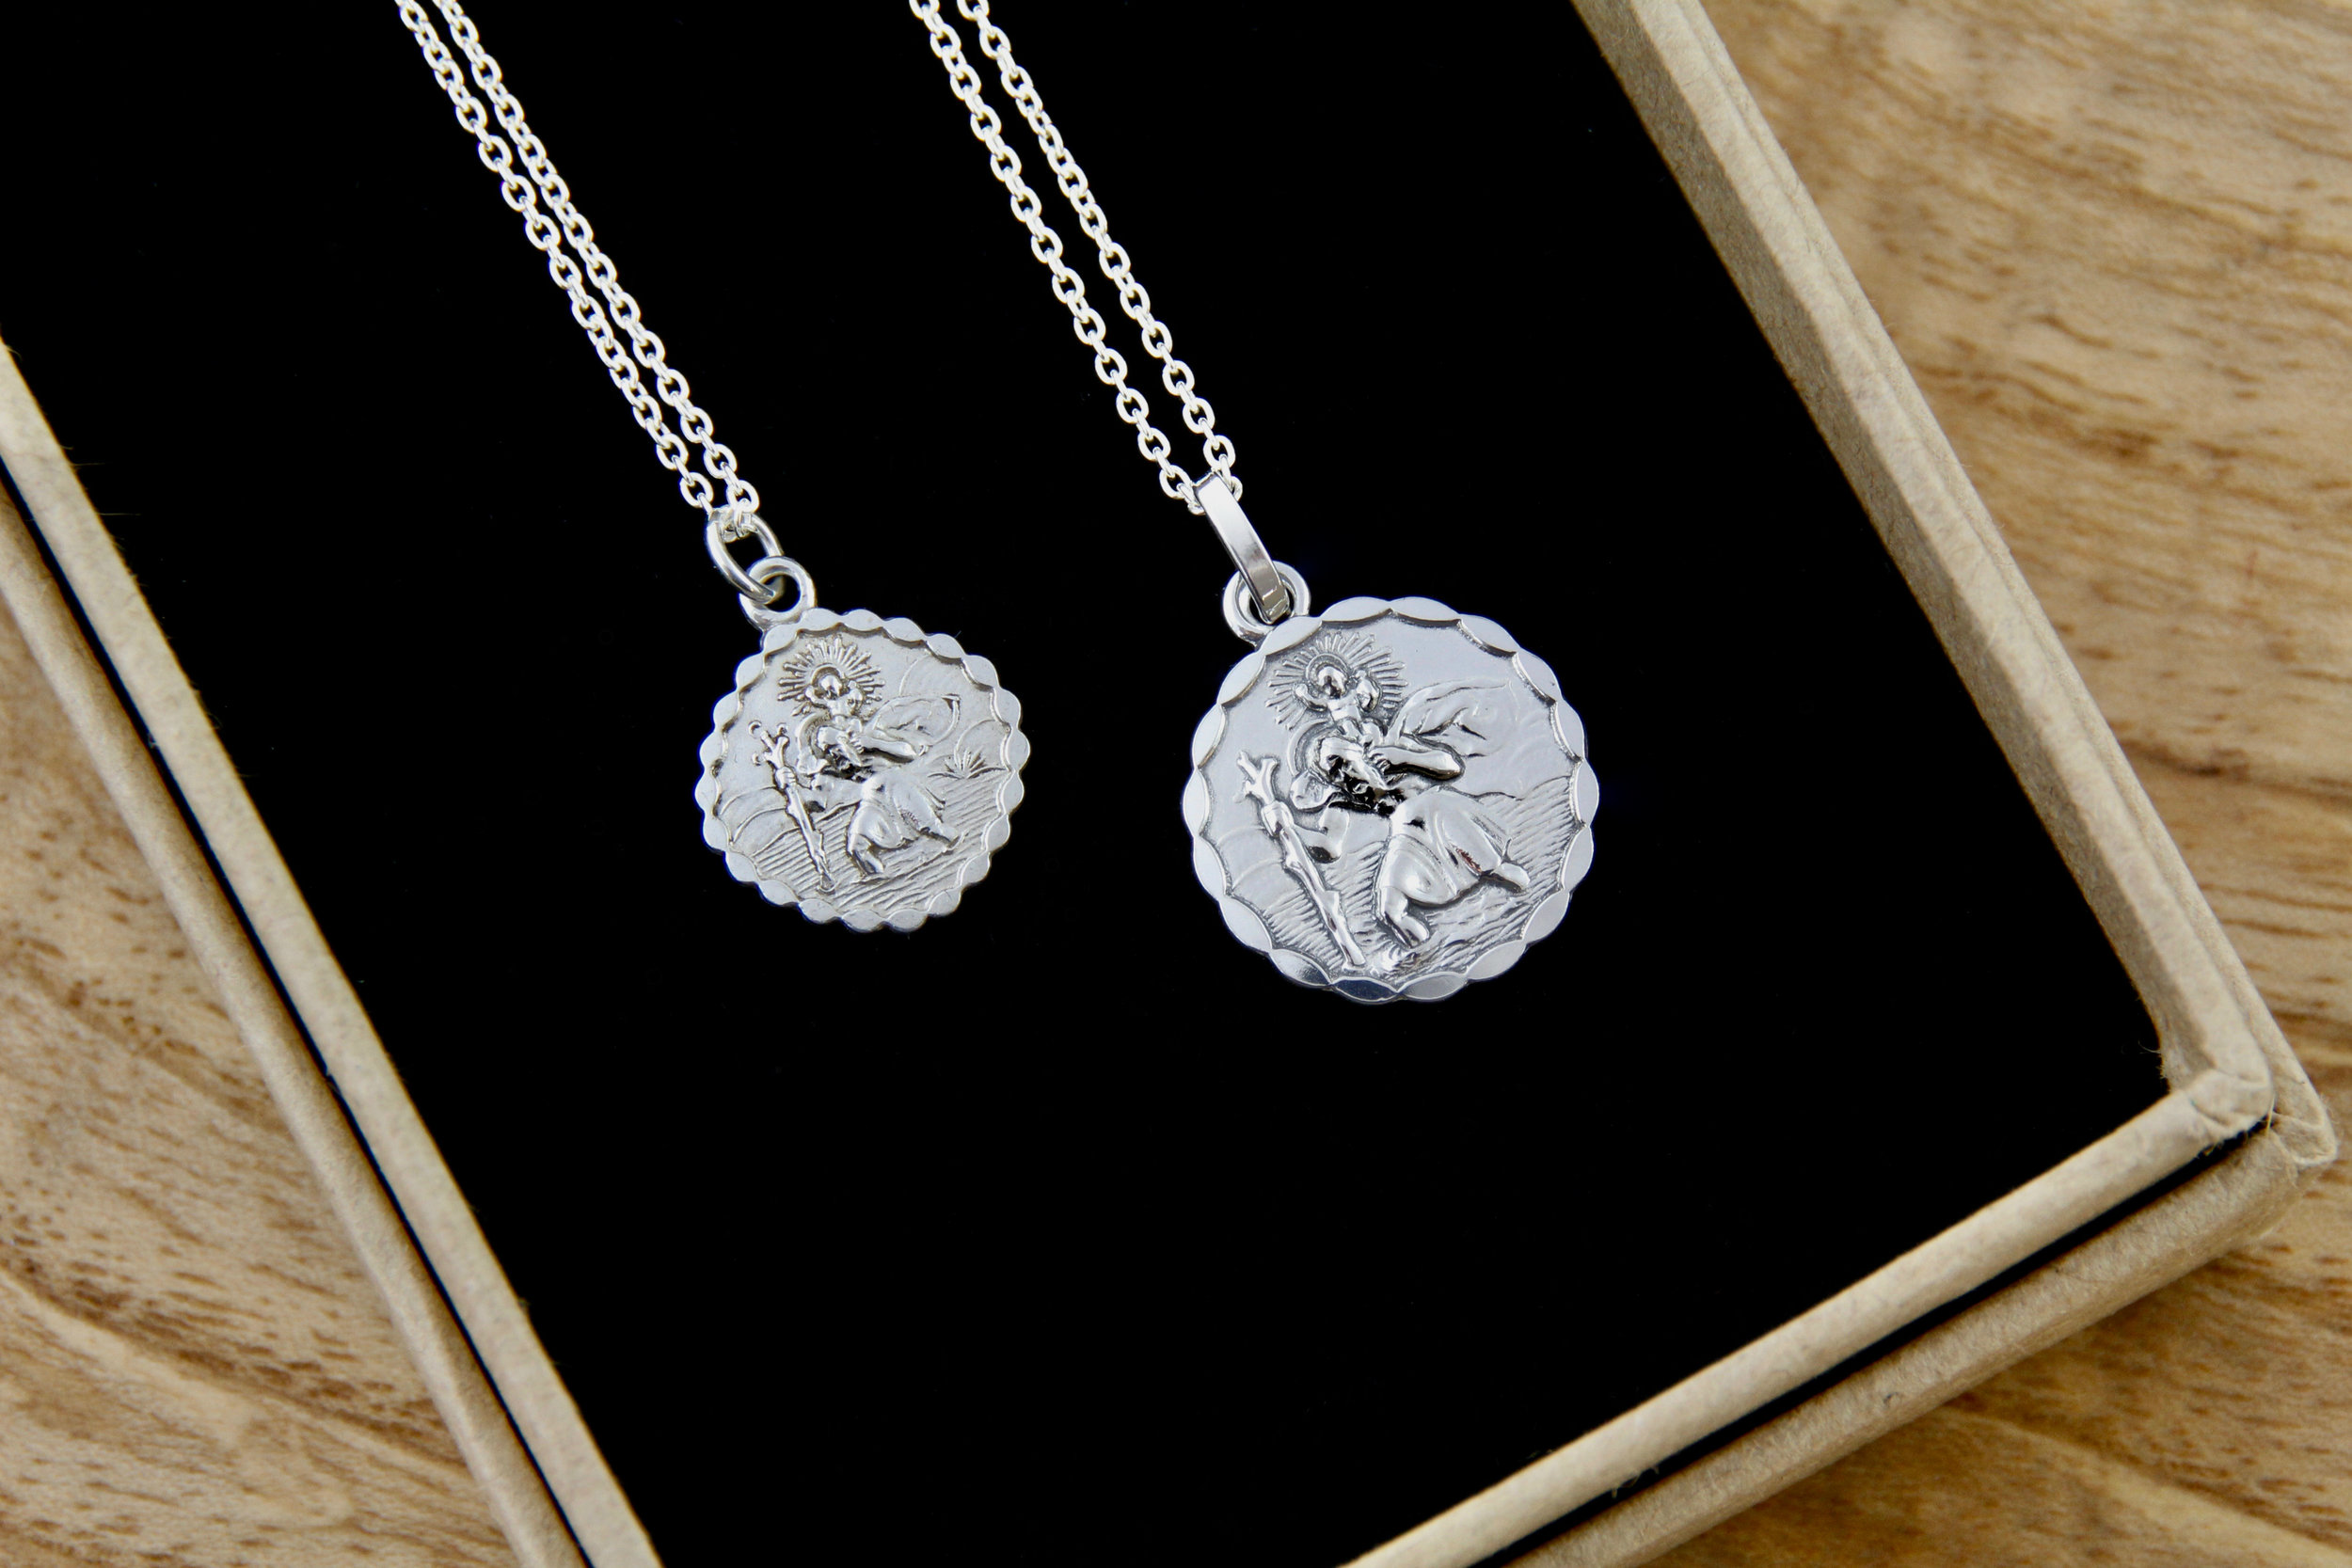 St Christopher necklaces.jpg